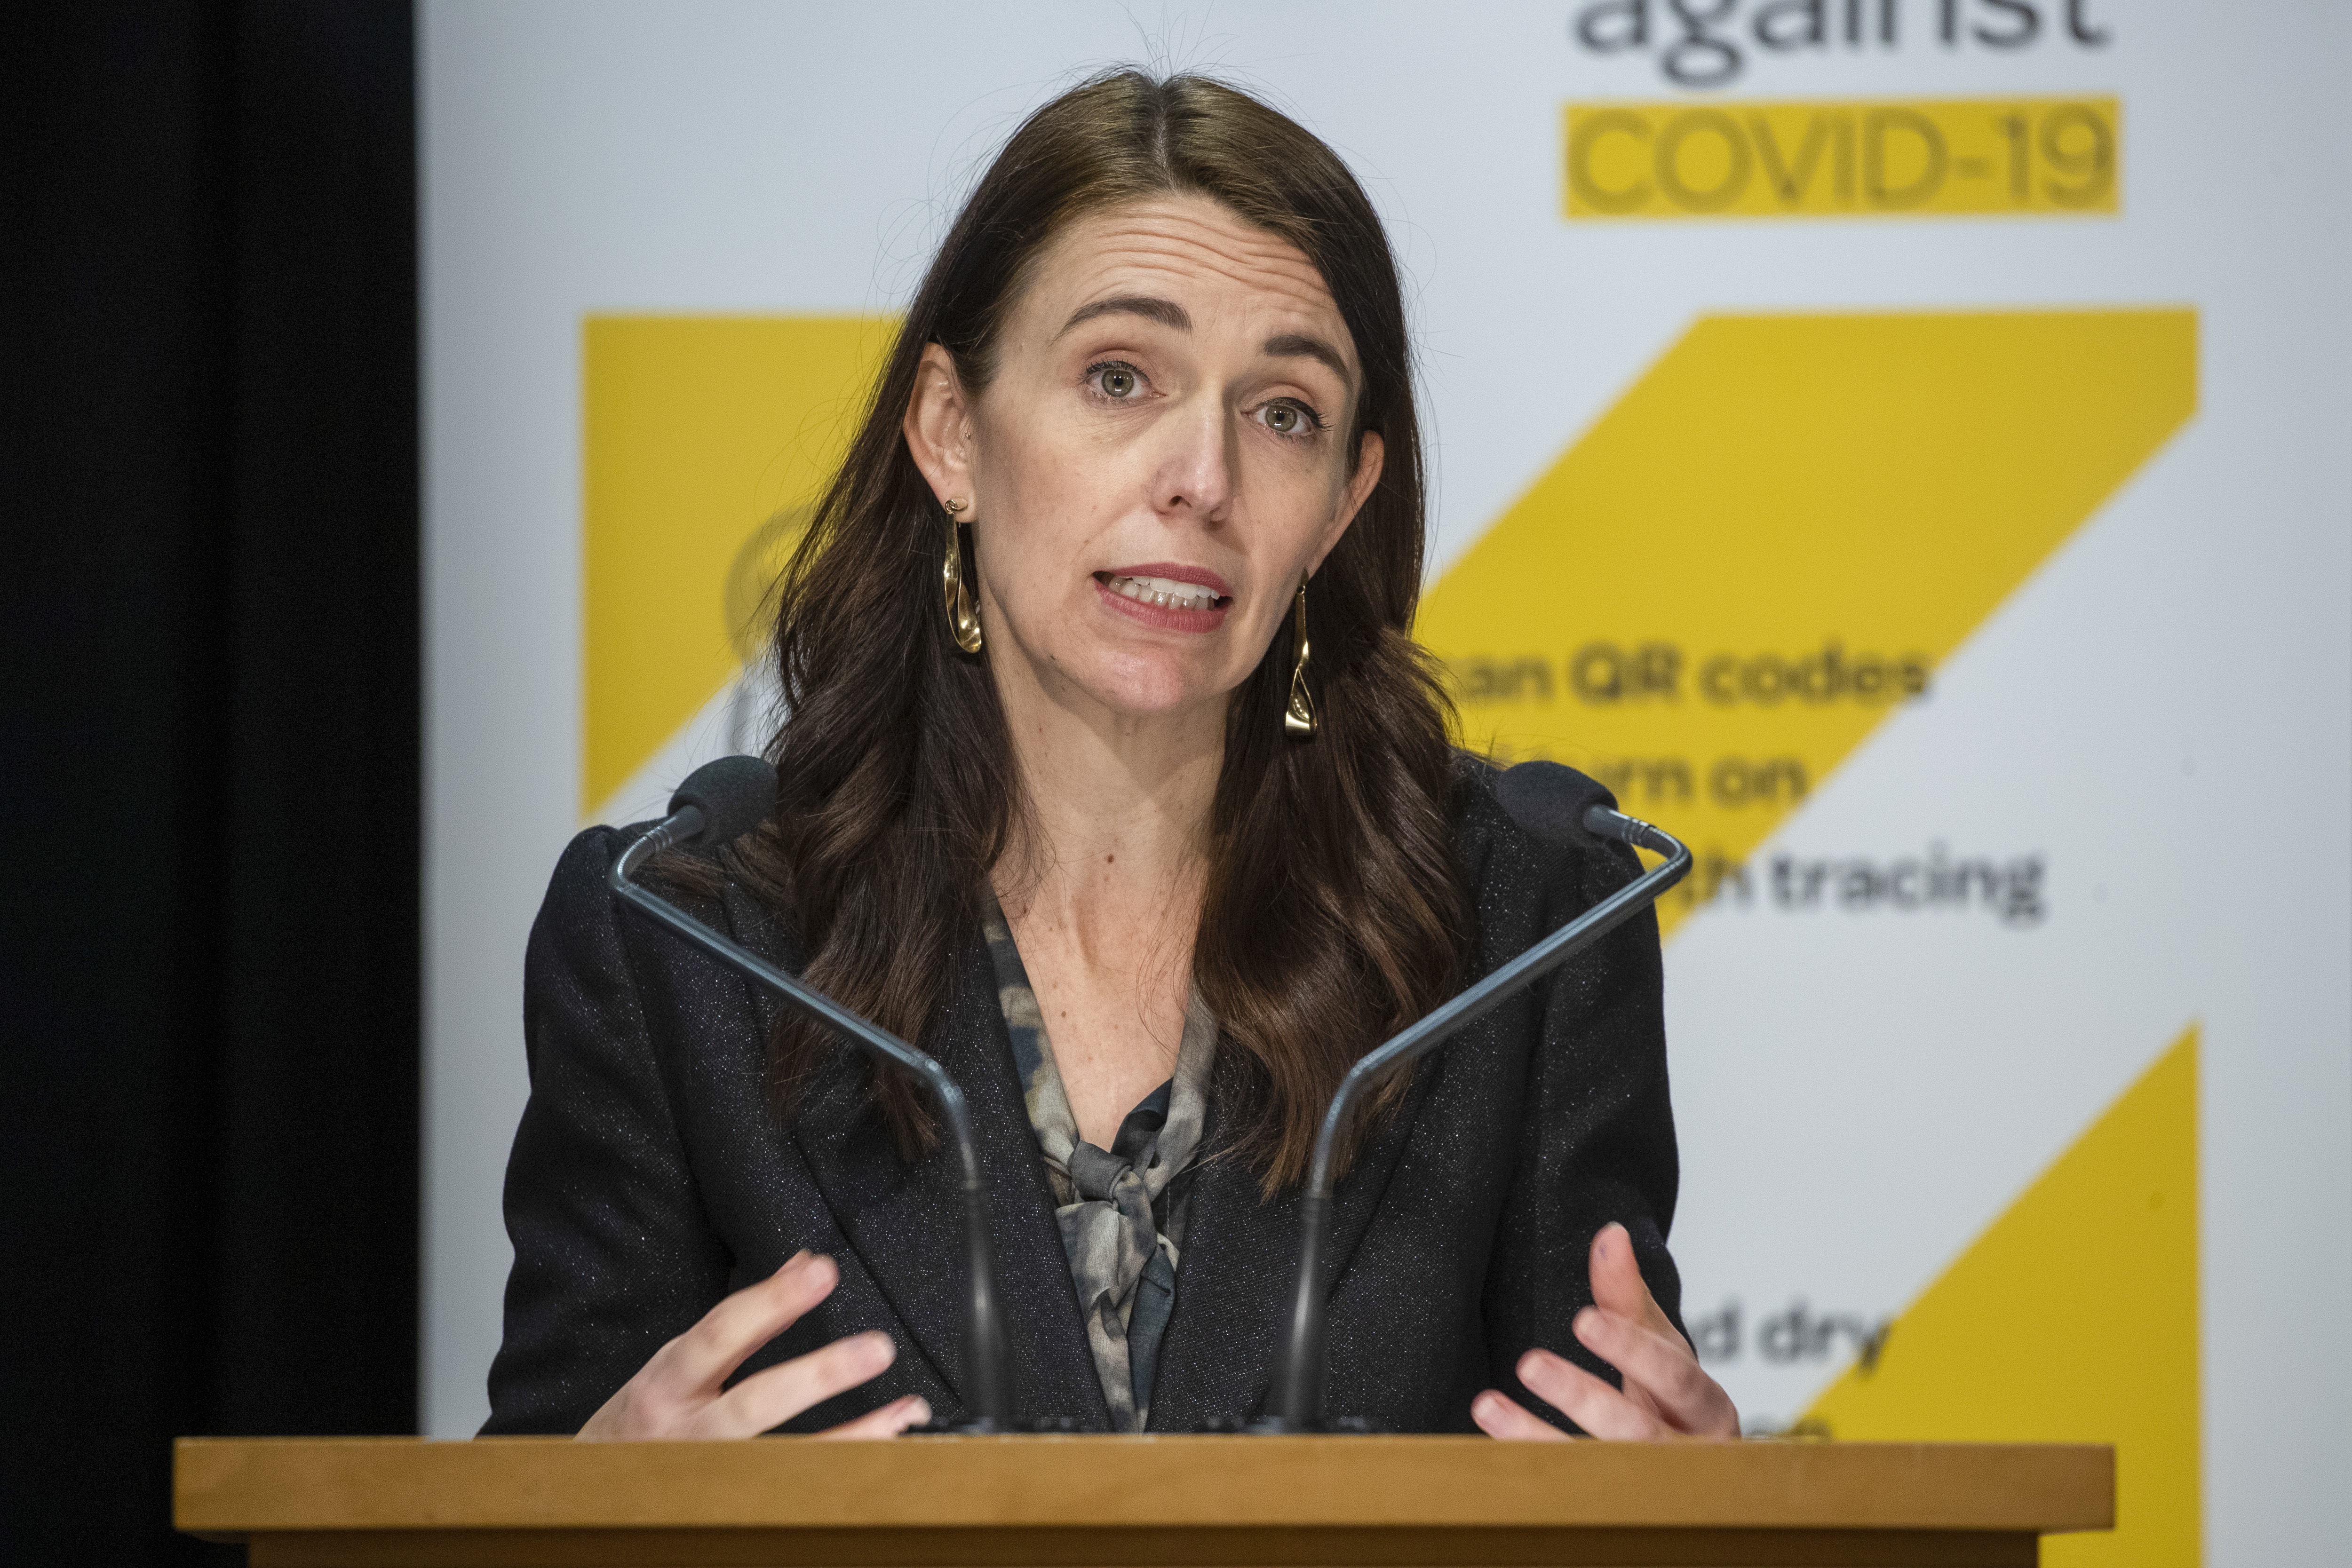 New Zealand's prime minister speaks to Parliament about the nation's new COVID-19 lockdown.